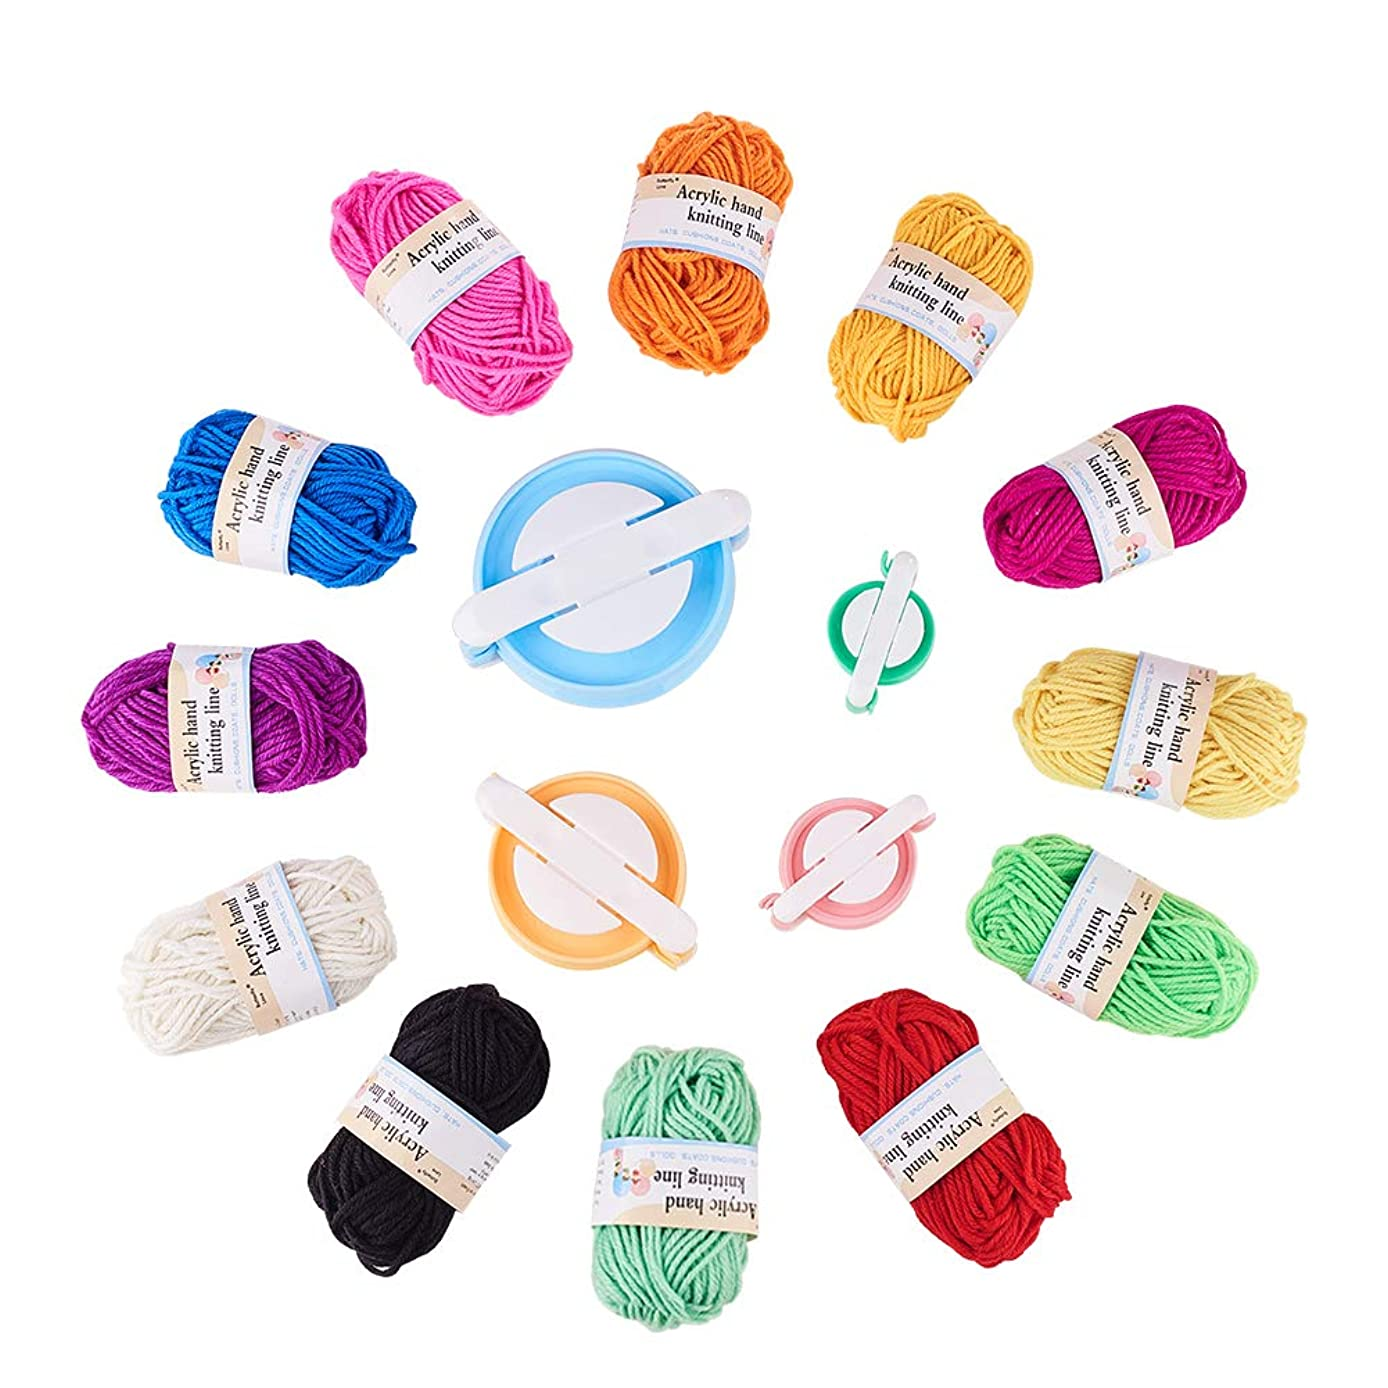 PH PandaHall 4 pcs 4 Sizes Plastic Pompom Pom pom Maker with 12 Bundles 12 Colors 22M/Bundle 2mm Fiber Yarn for Fluff Ball Weaver Needle Craft DIY Knitting